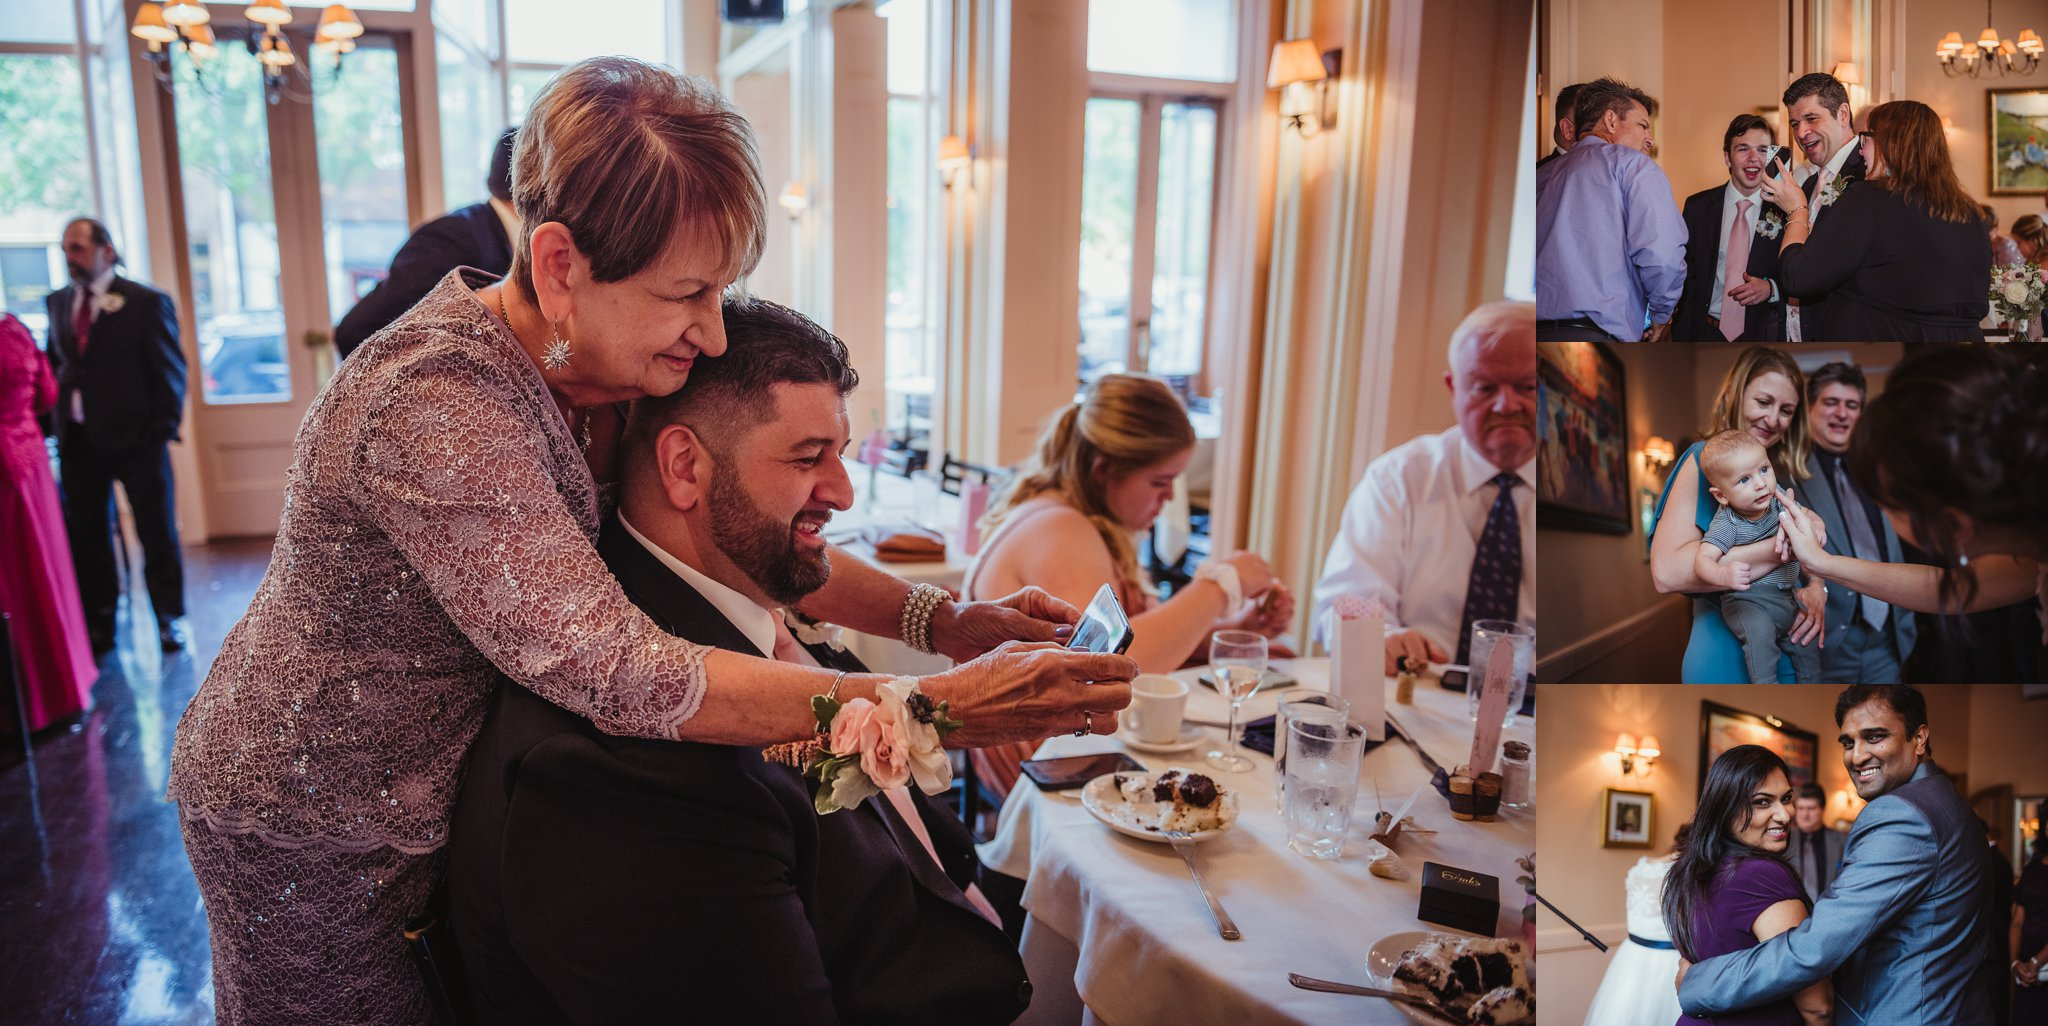 Guests were having a lot of fun laughing and interacting during the wedding reception at Caffe Luna, pictures taken by Rose Trail Images in Raleigh, NC.